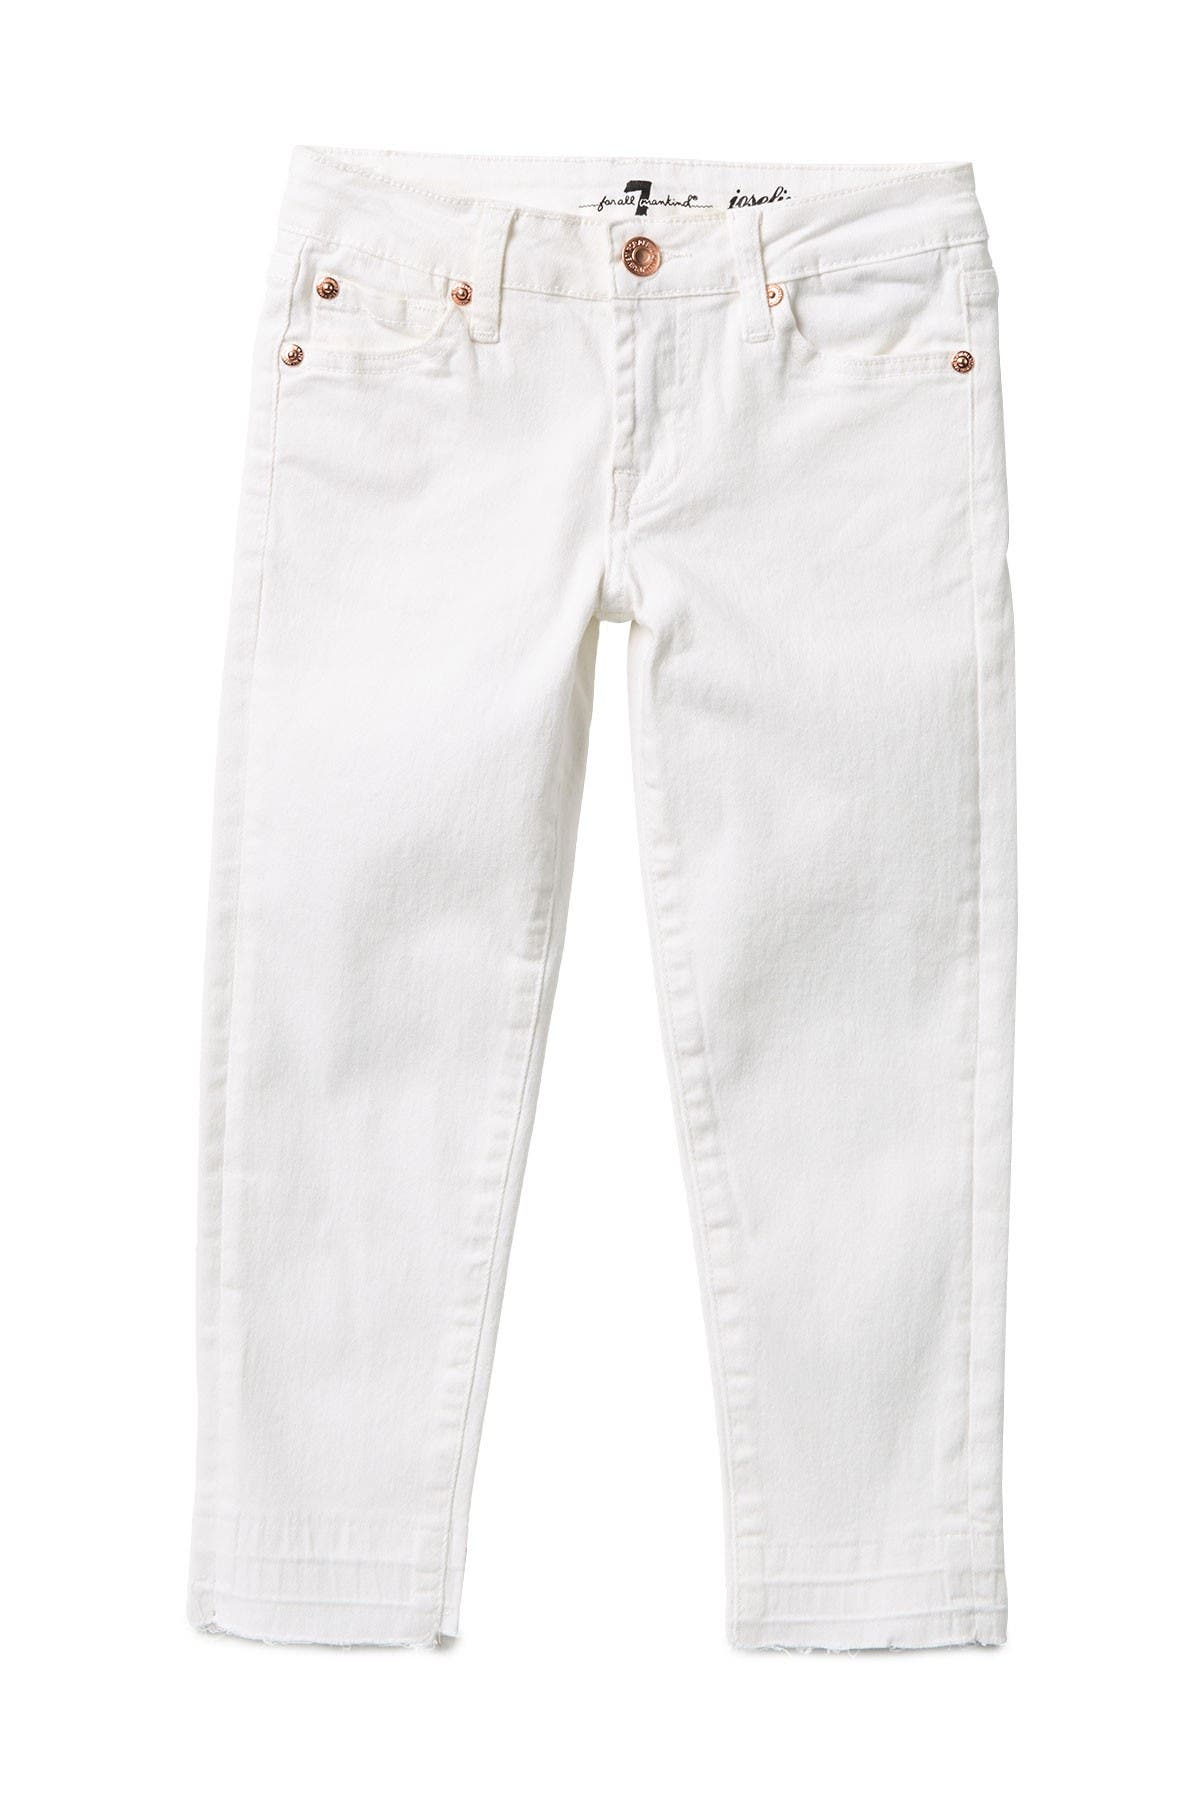 Image of 7 For All Mankind Josefina Jeans